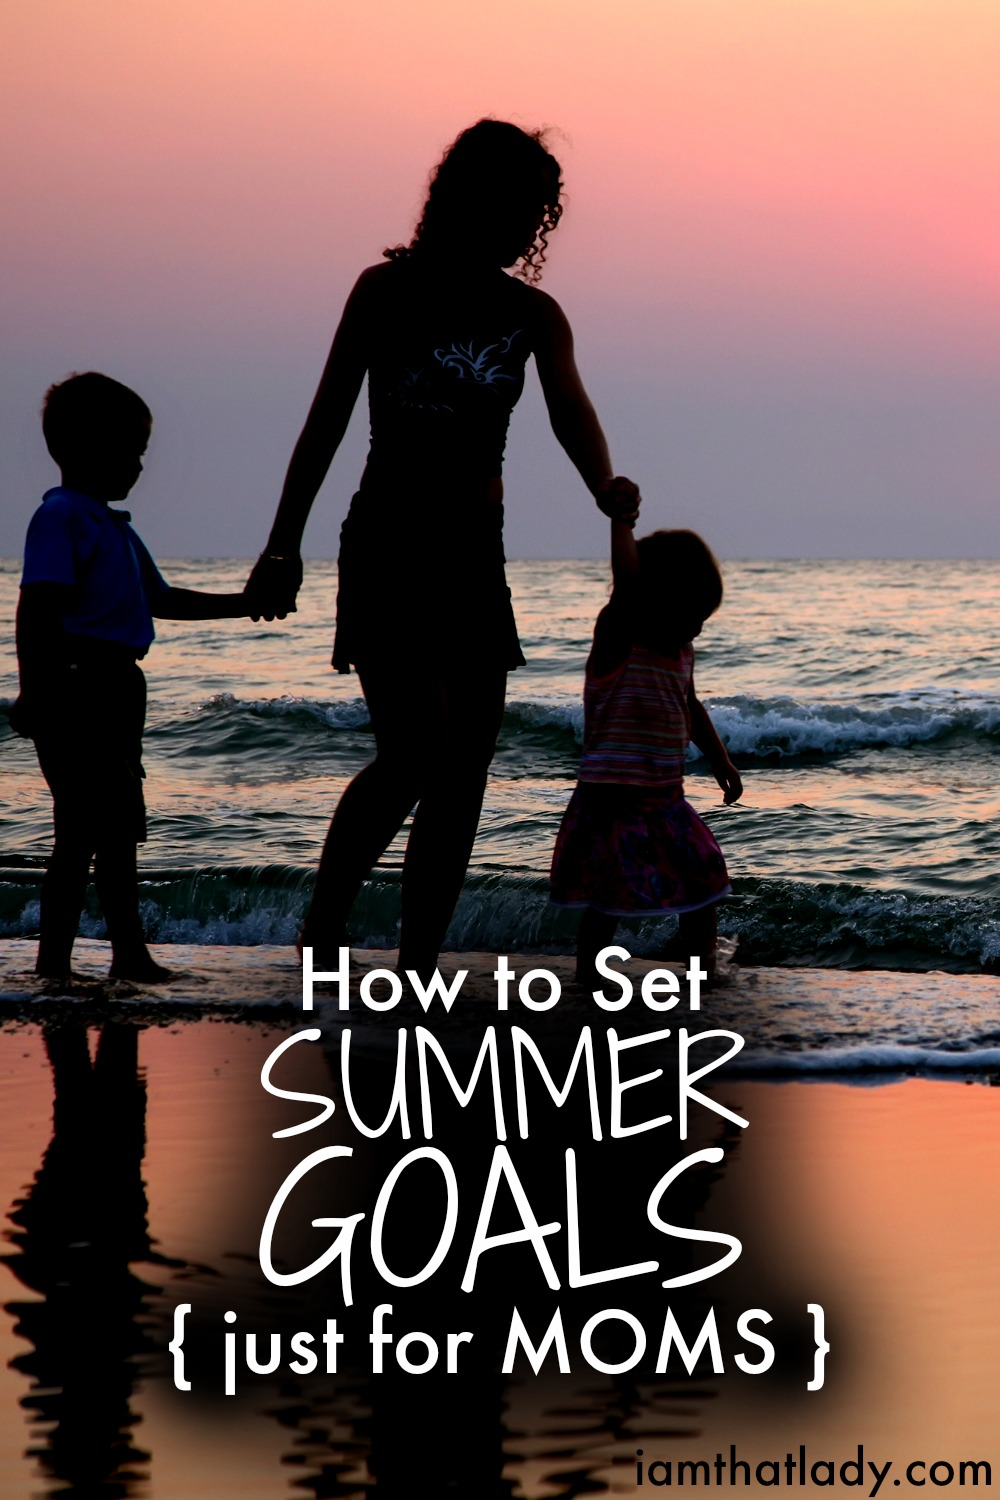 Summers can be tough for Moms, right? Here's some awesome tips to help you set your summer goals and have an AMAZING summer with your family!